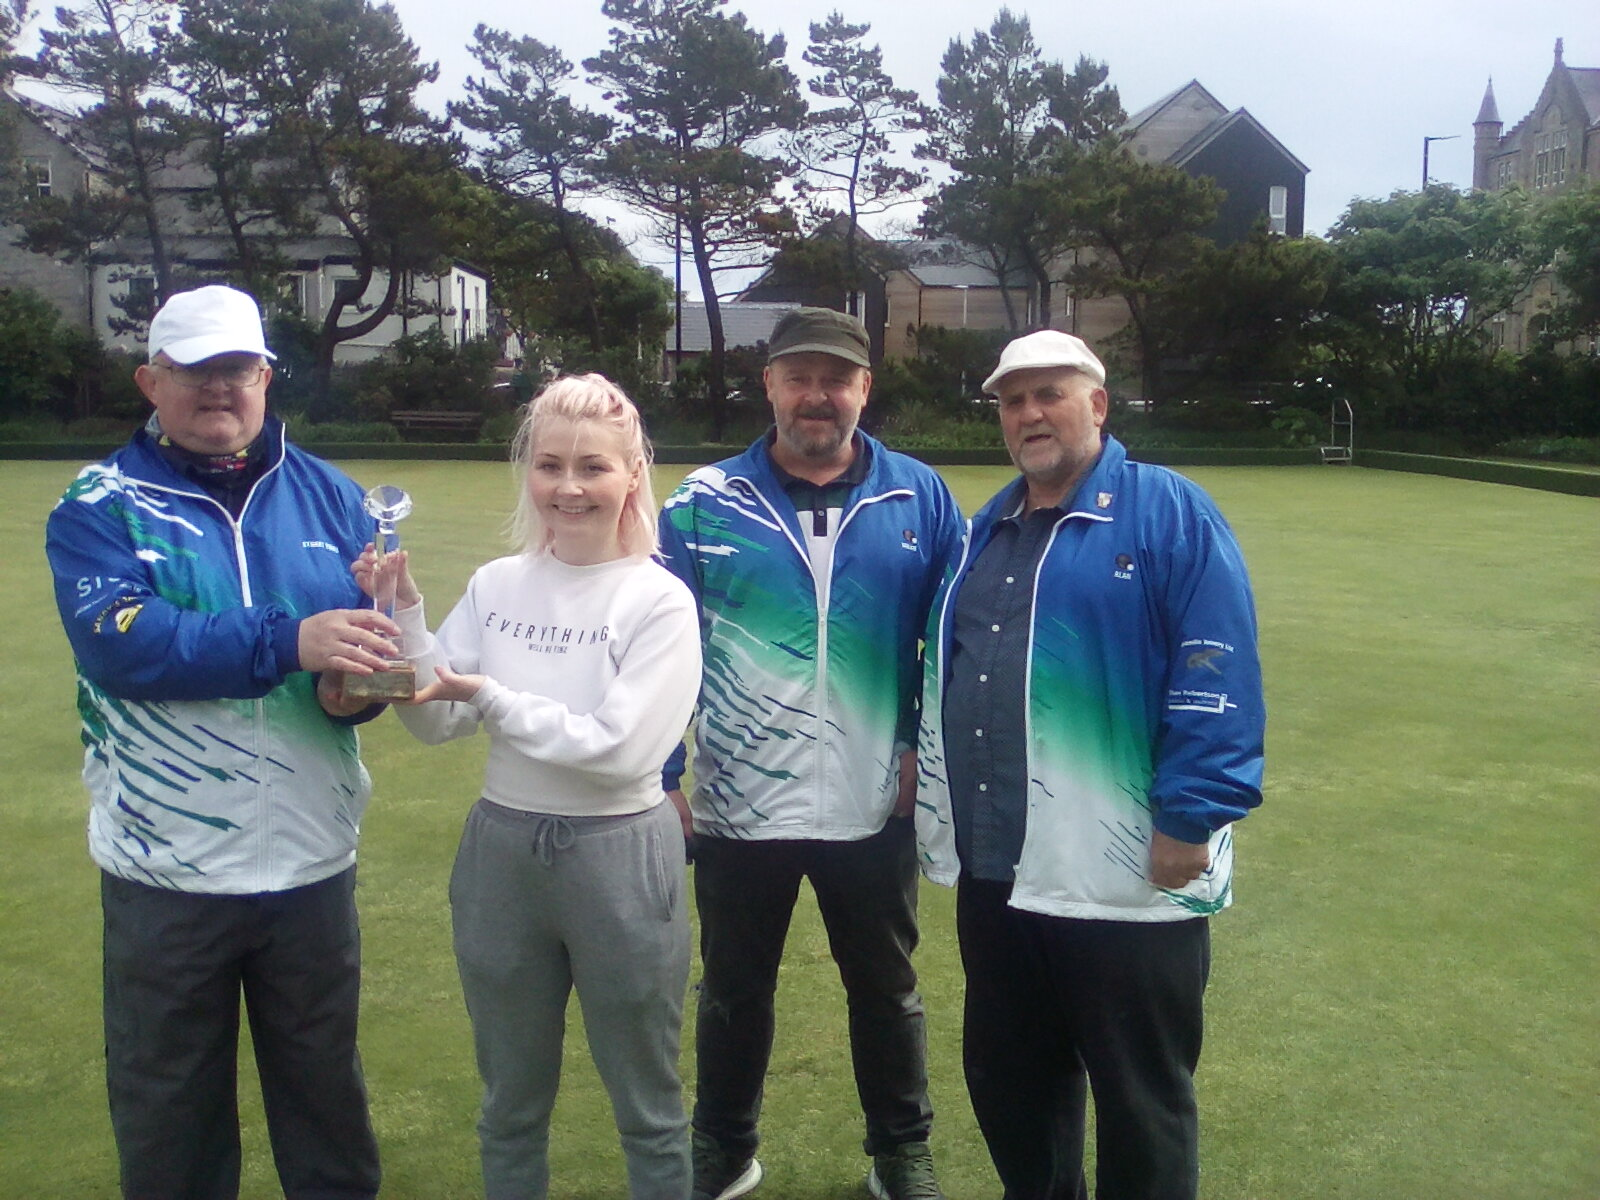 Stuart Terris of Shetland Technical Solutions presenting the trophy to Emma Moncrieff, Willie Coutts and Alan Smith